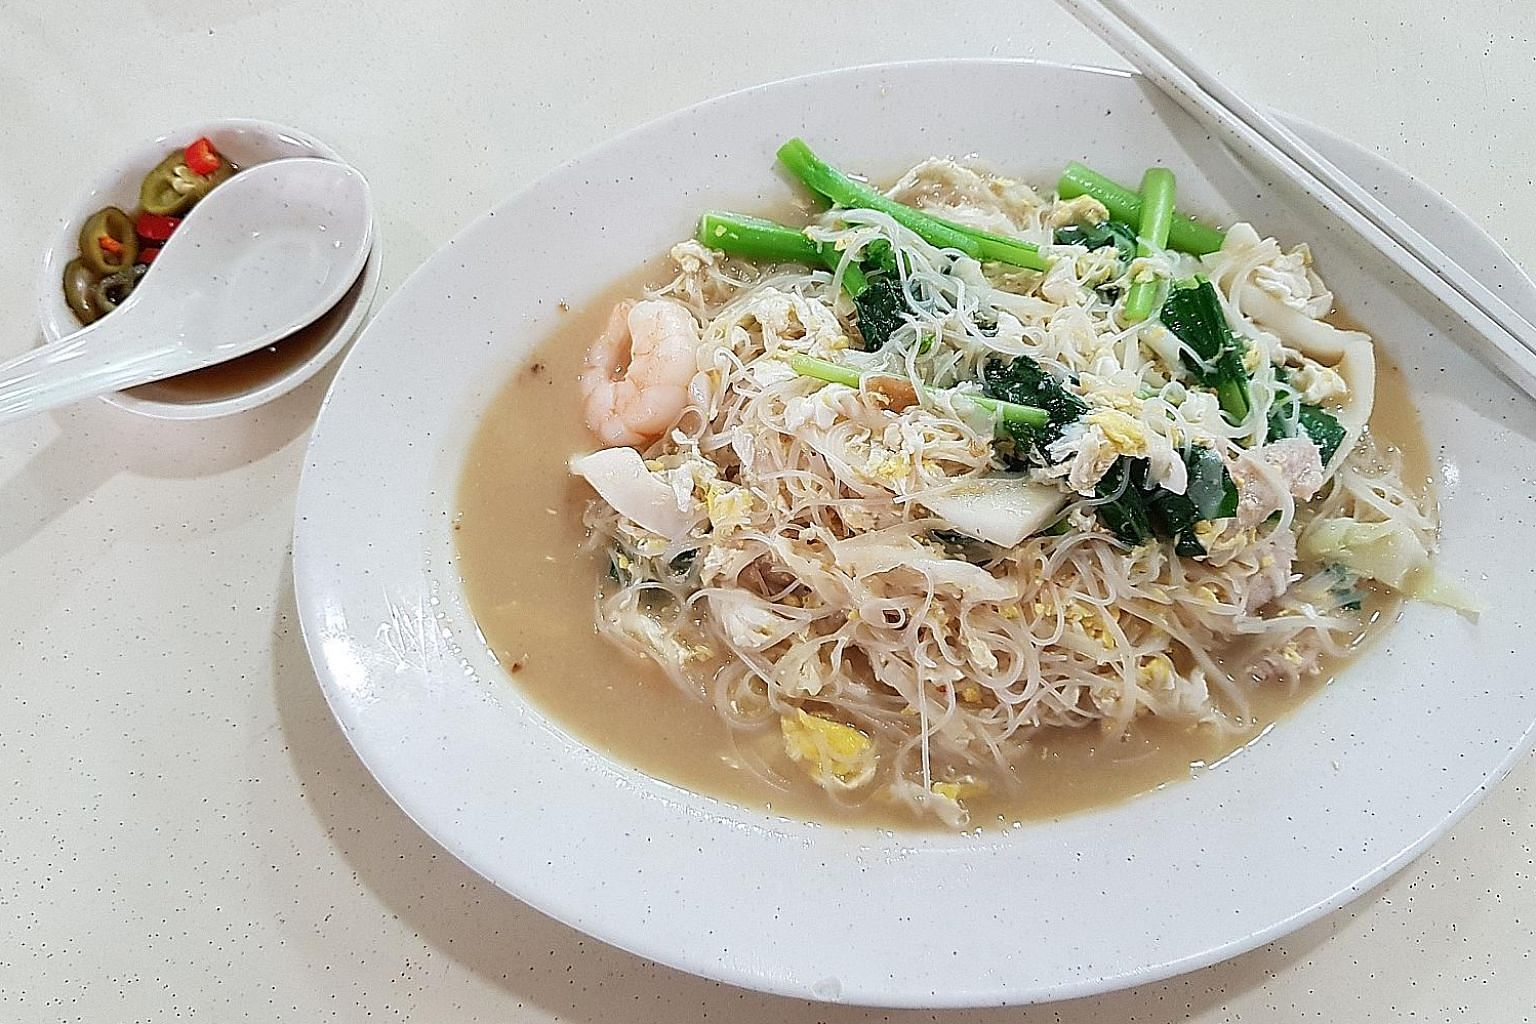 The white beehoon came with a nice variety of ingredients.